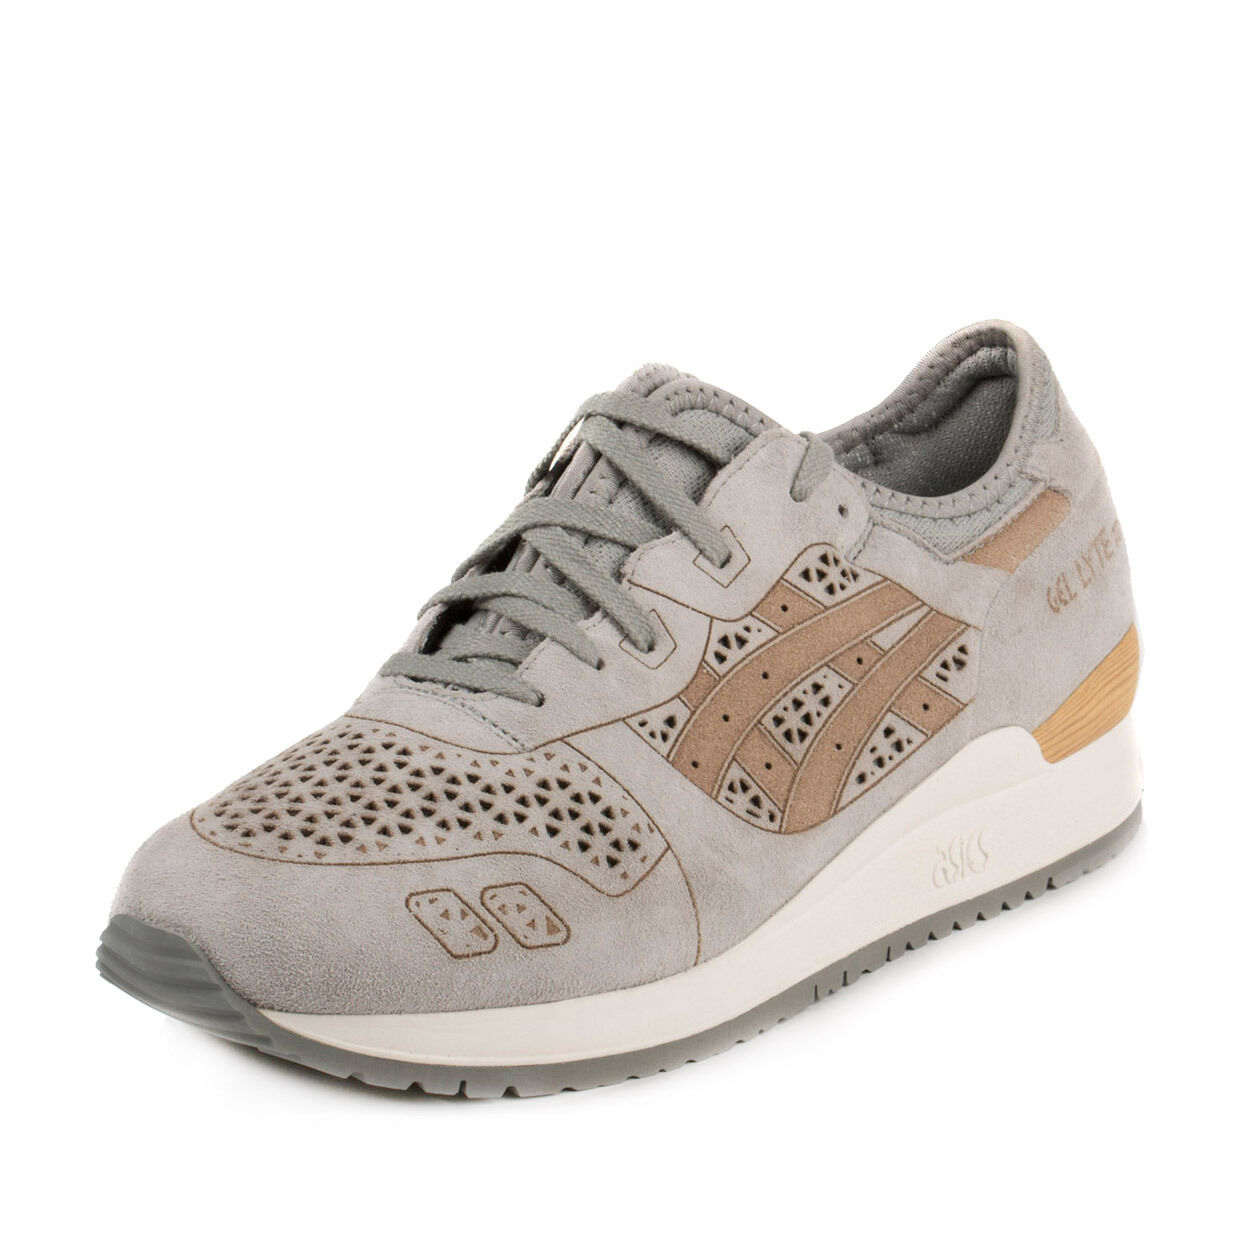 NEW   ASICS TIGER GEL-LYTE III LC H5E3L UNISEX Chaussures LIGHT Gris FAST SHIPPING